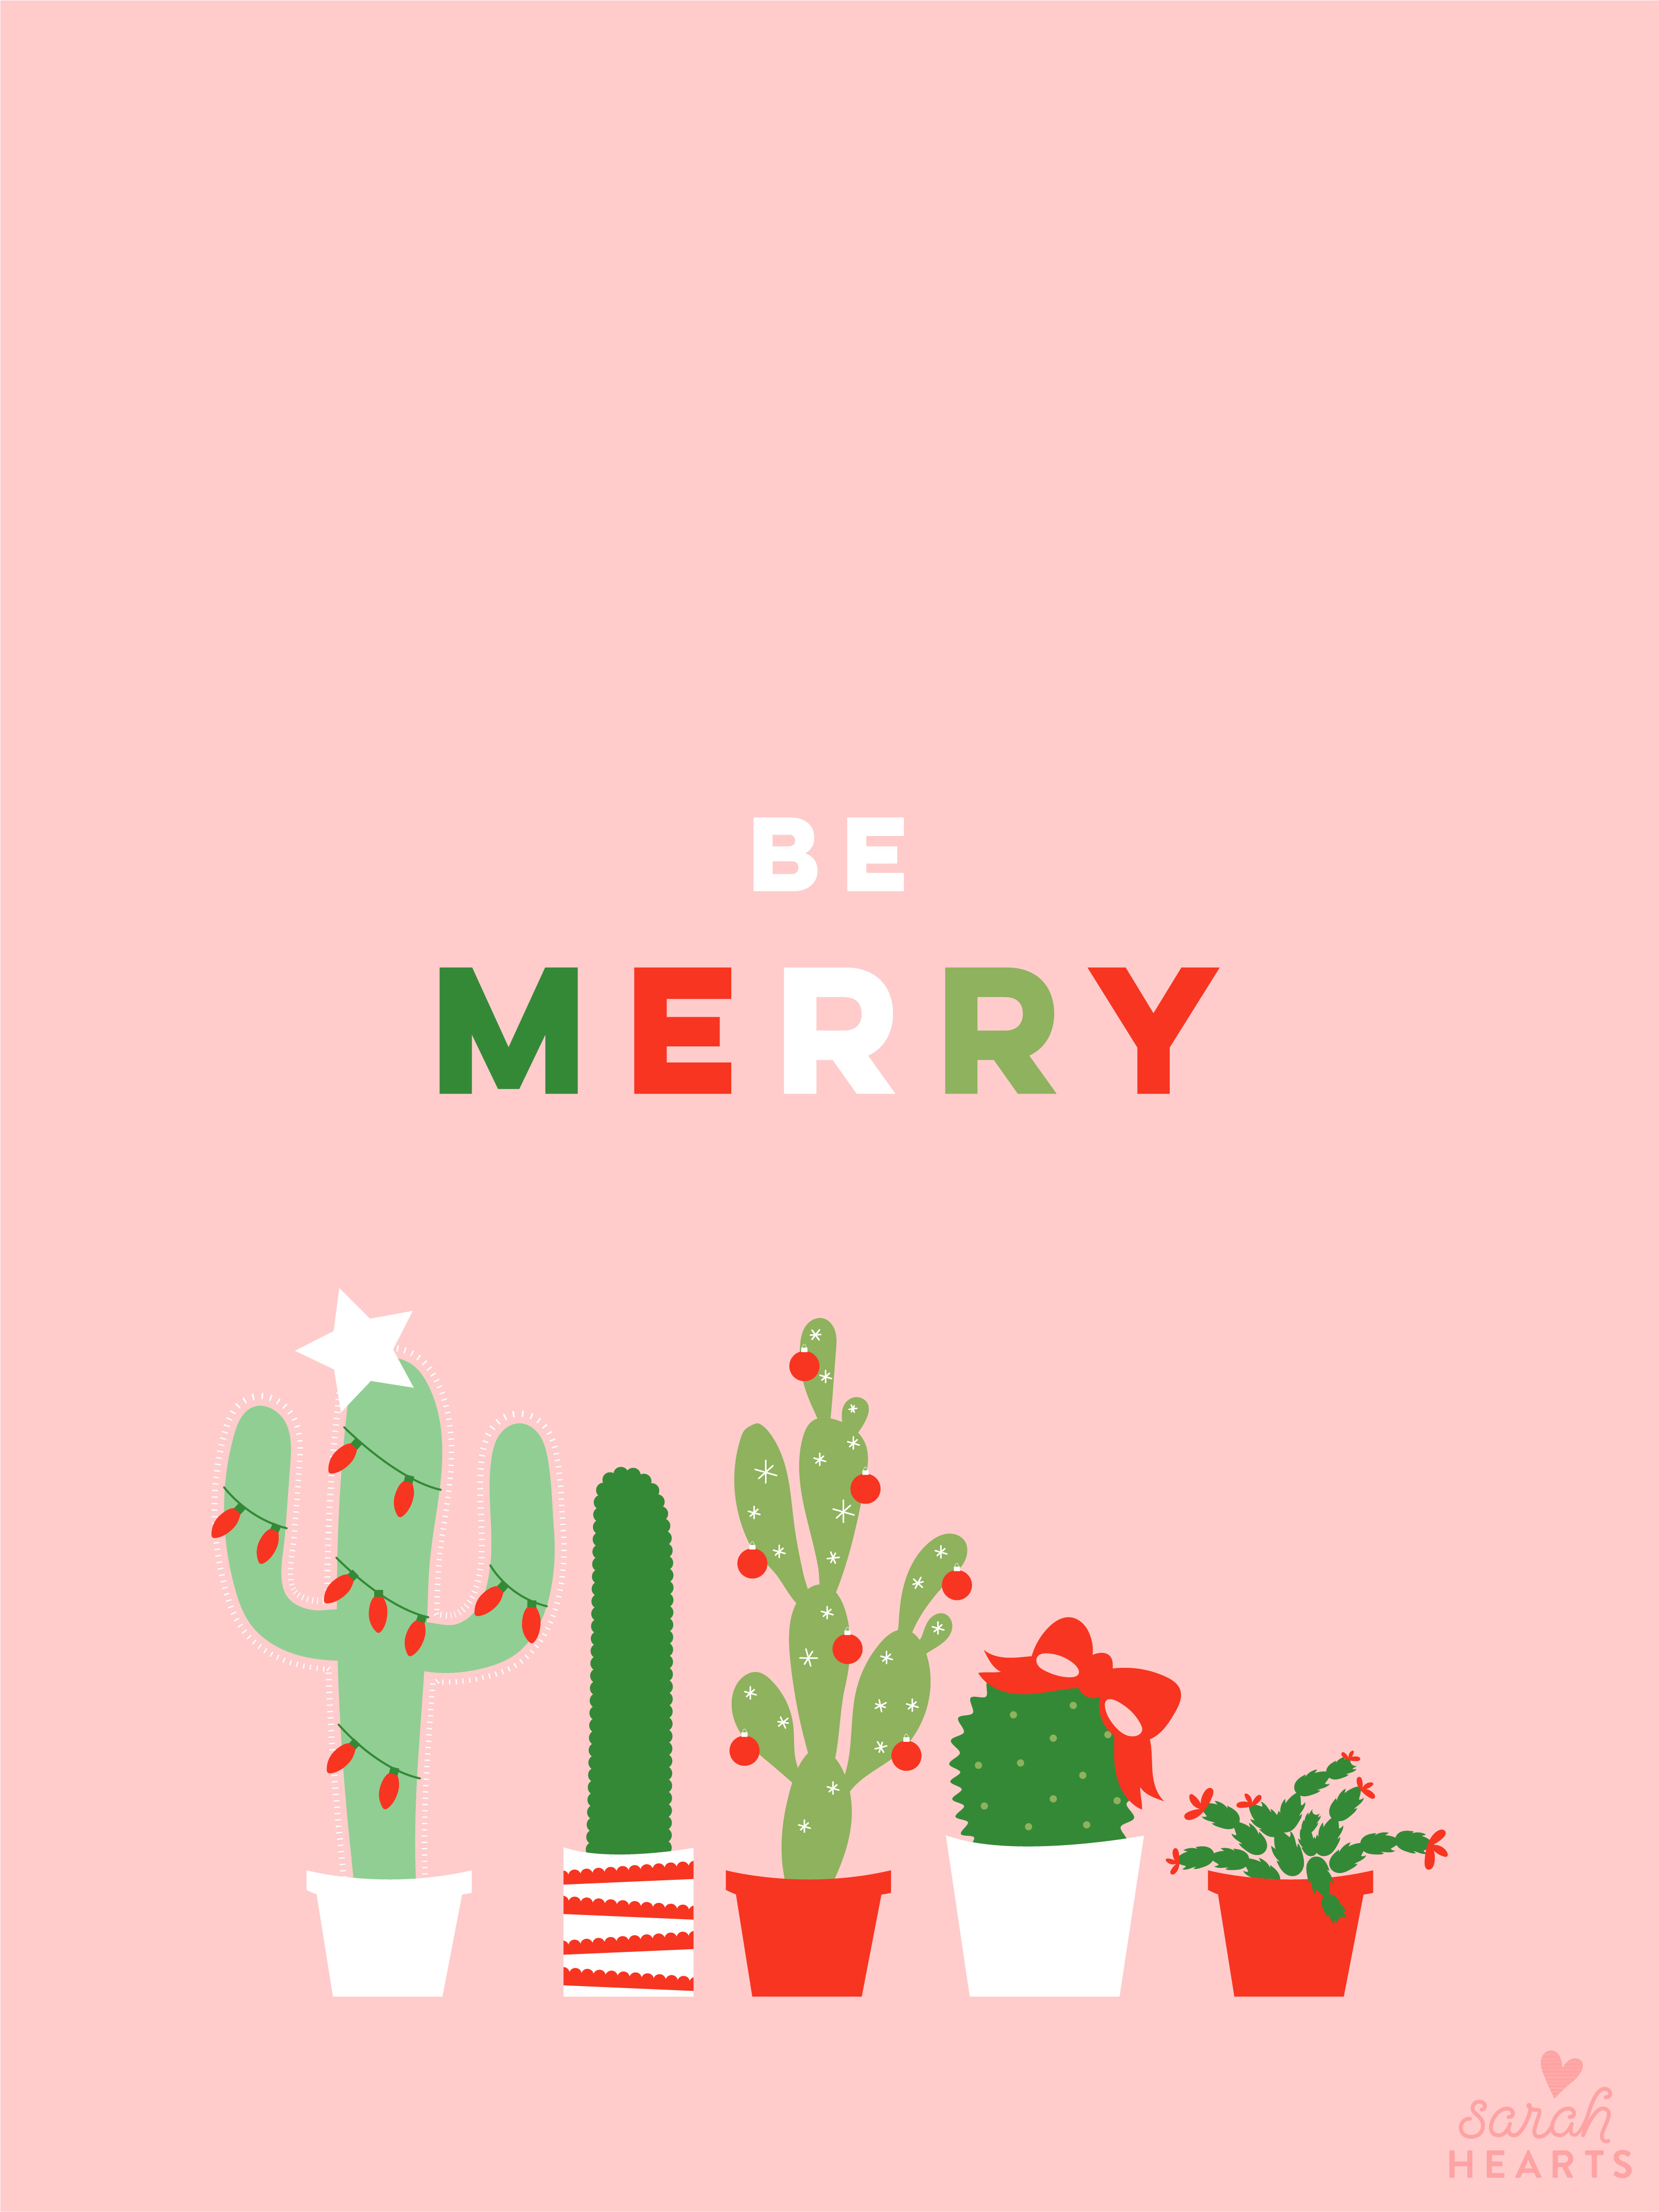 Cute Pineapple Iphone Wallpaper December 2017 Christmas Cactus Calendar Wallpaper Sarah